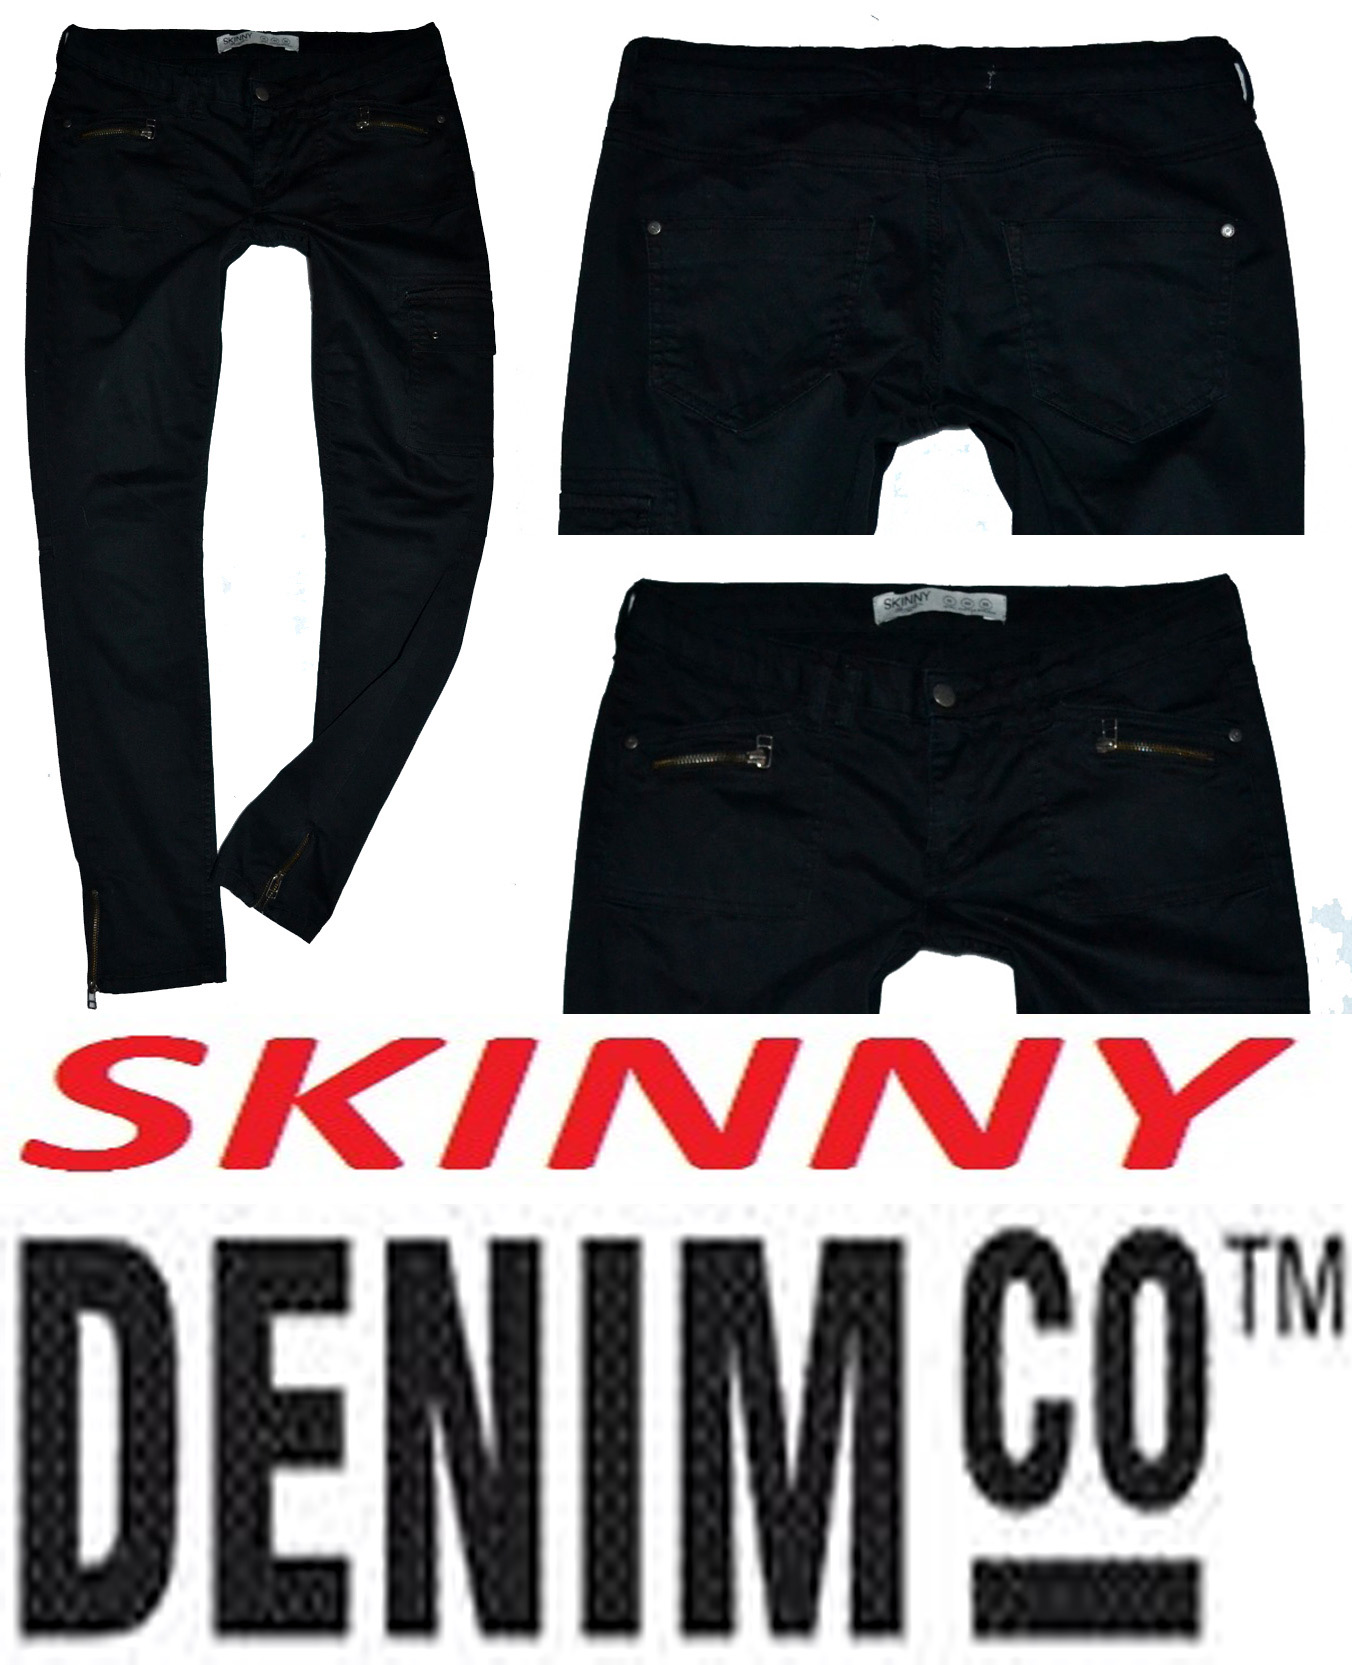 Džíny s elastanem zn. DENIM CO SKINNY vel. 40(12)